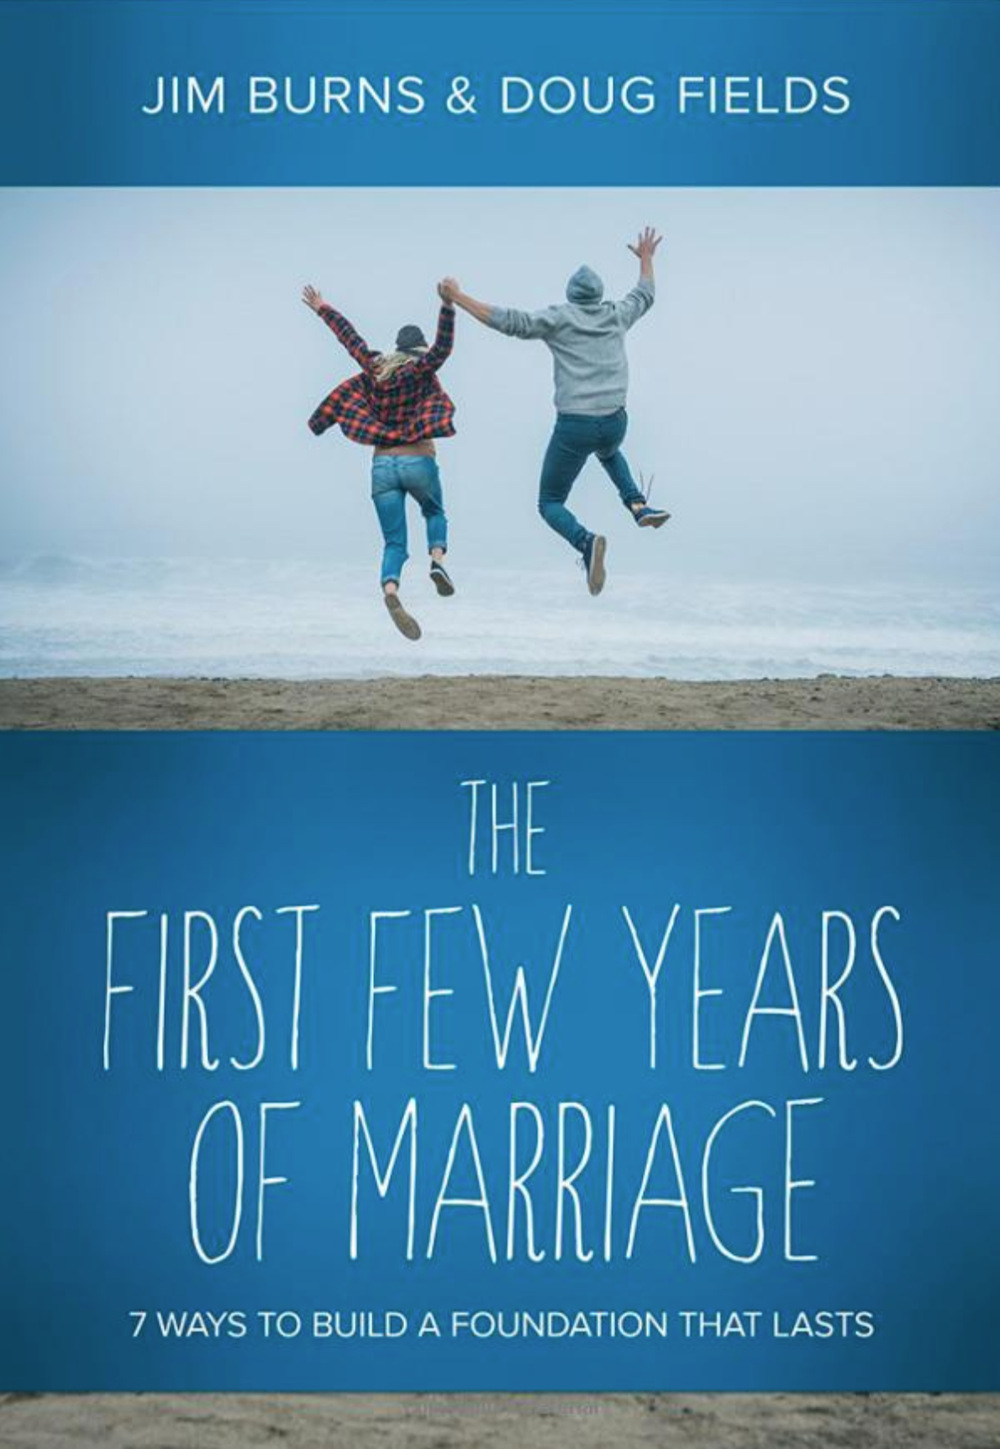 The_First_Few_Years_of_Marriage__8_Ways_to_Strengthen_Your__I_Do___Jim_Burns__Doug_Fields__9780781411981__Amazon_com__Books.png